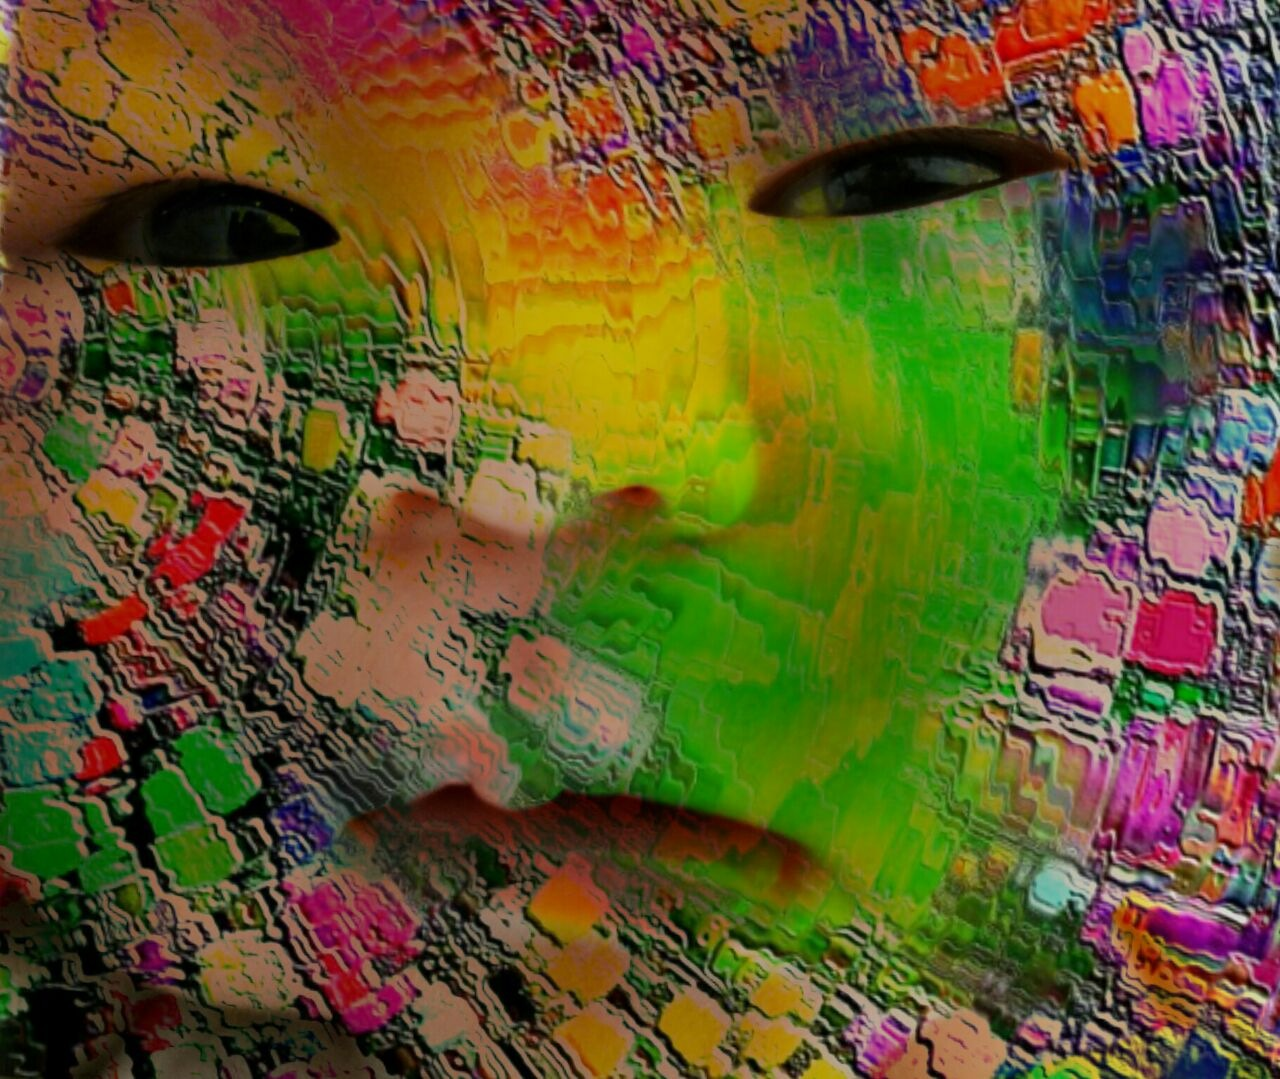 Baby face abstract by mijil.kresno